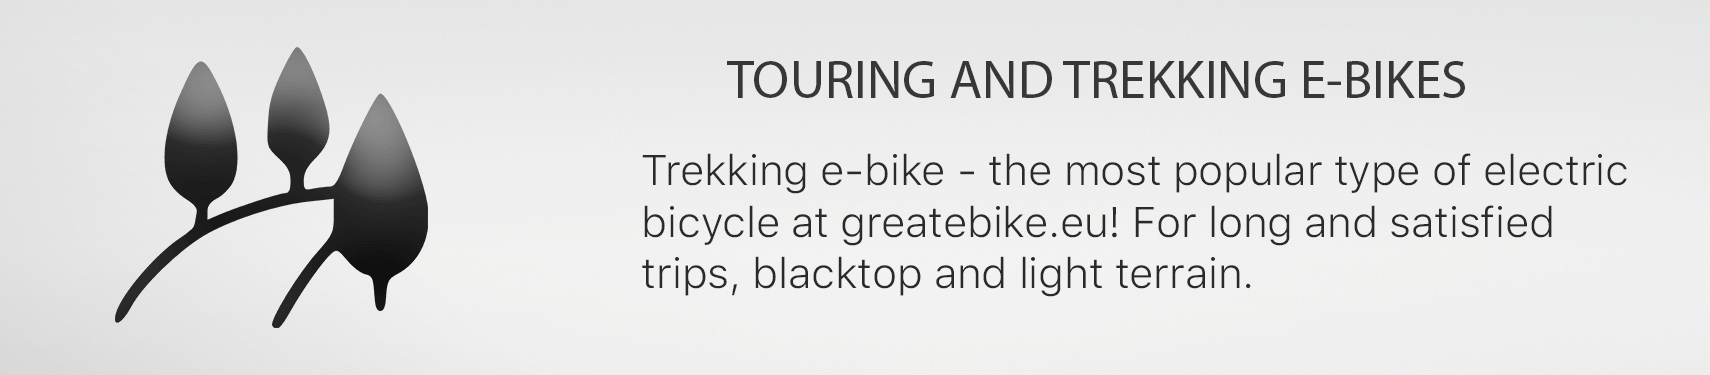 Trekking e-bike - the most popular type of electric  bicycle at greatebike.eu! For long and satisfied trips, blacktop and light terrain.